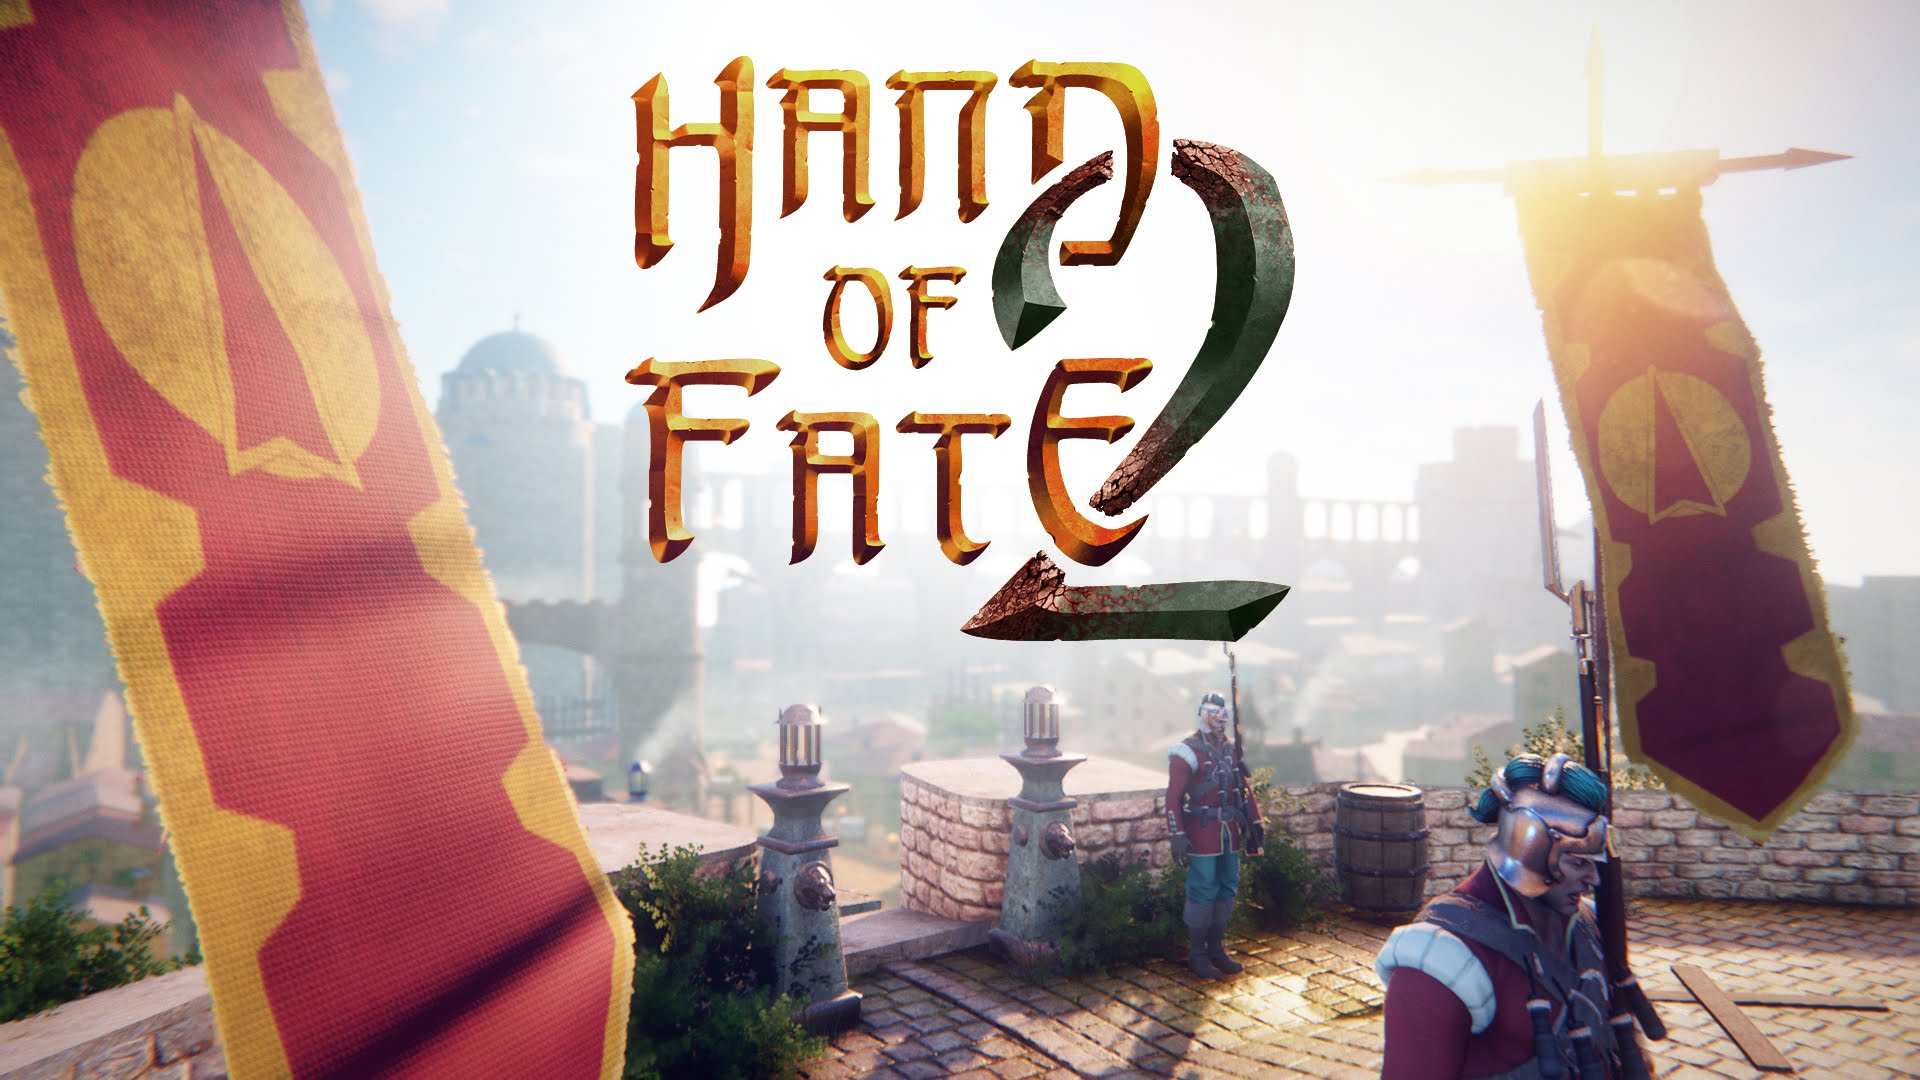 Photo of 2 of Hearts – Hand of Fate 2 Review